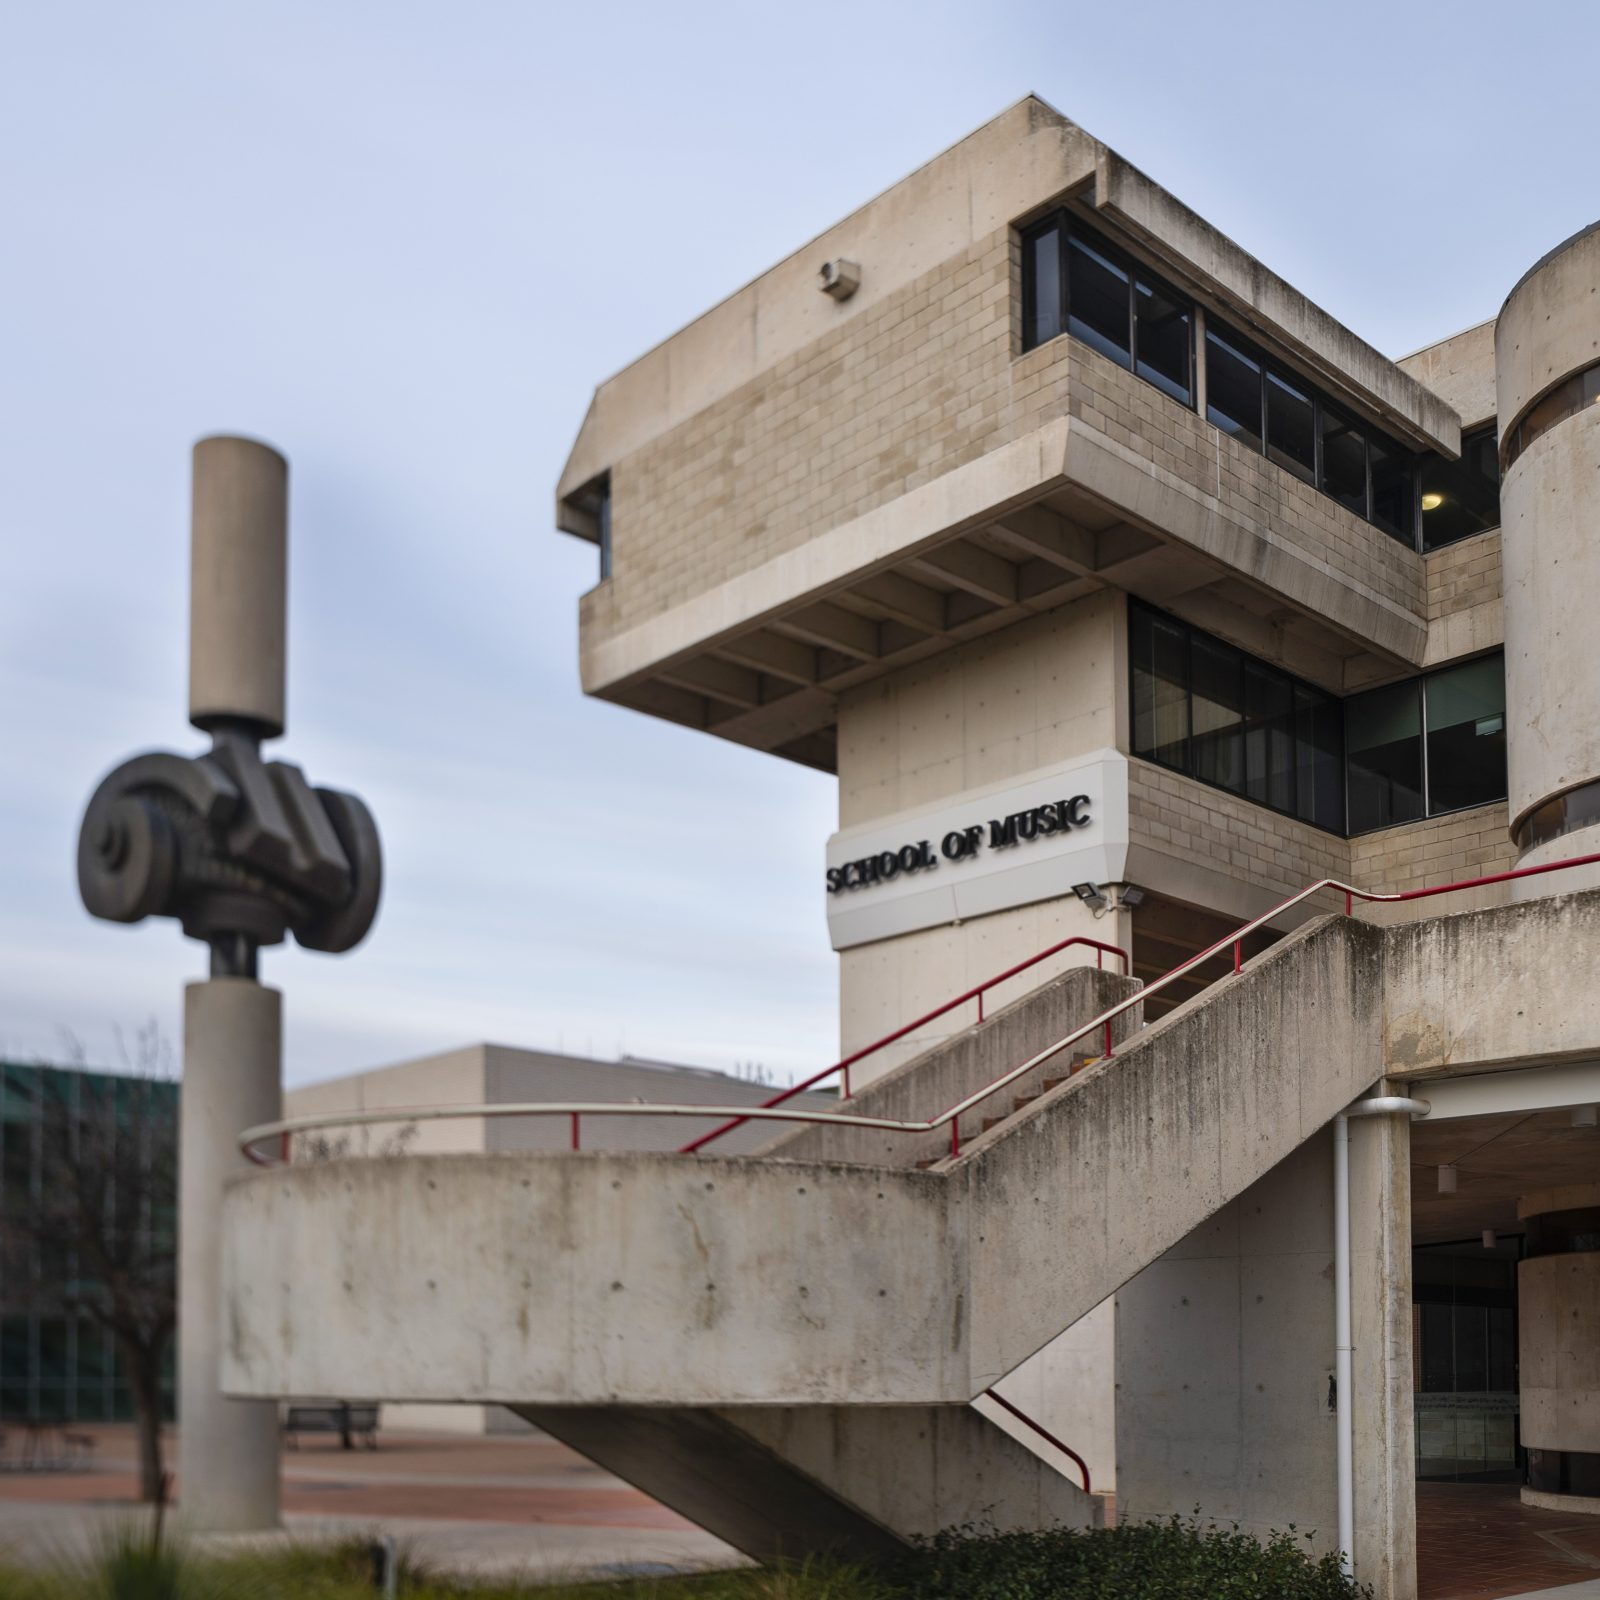 The brutalist ANU School of Music building is home to Llewellyn Hall and designed by Daryl Jackson.